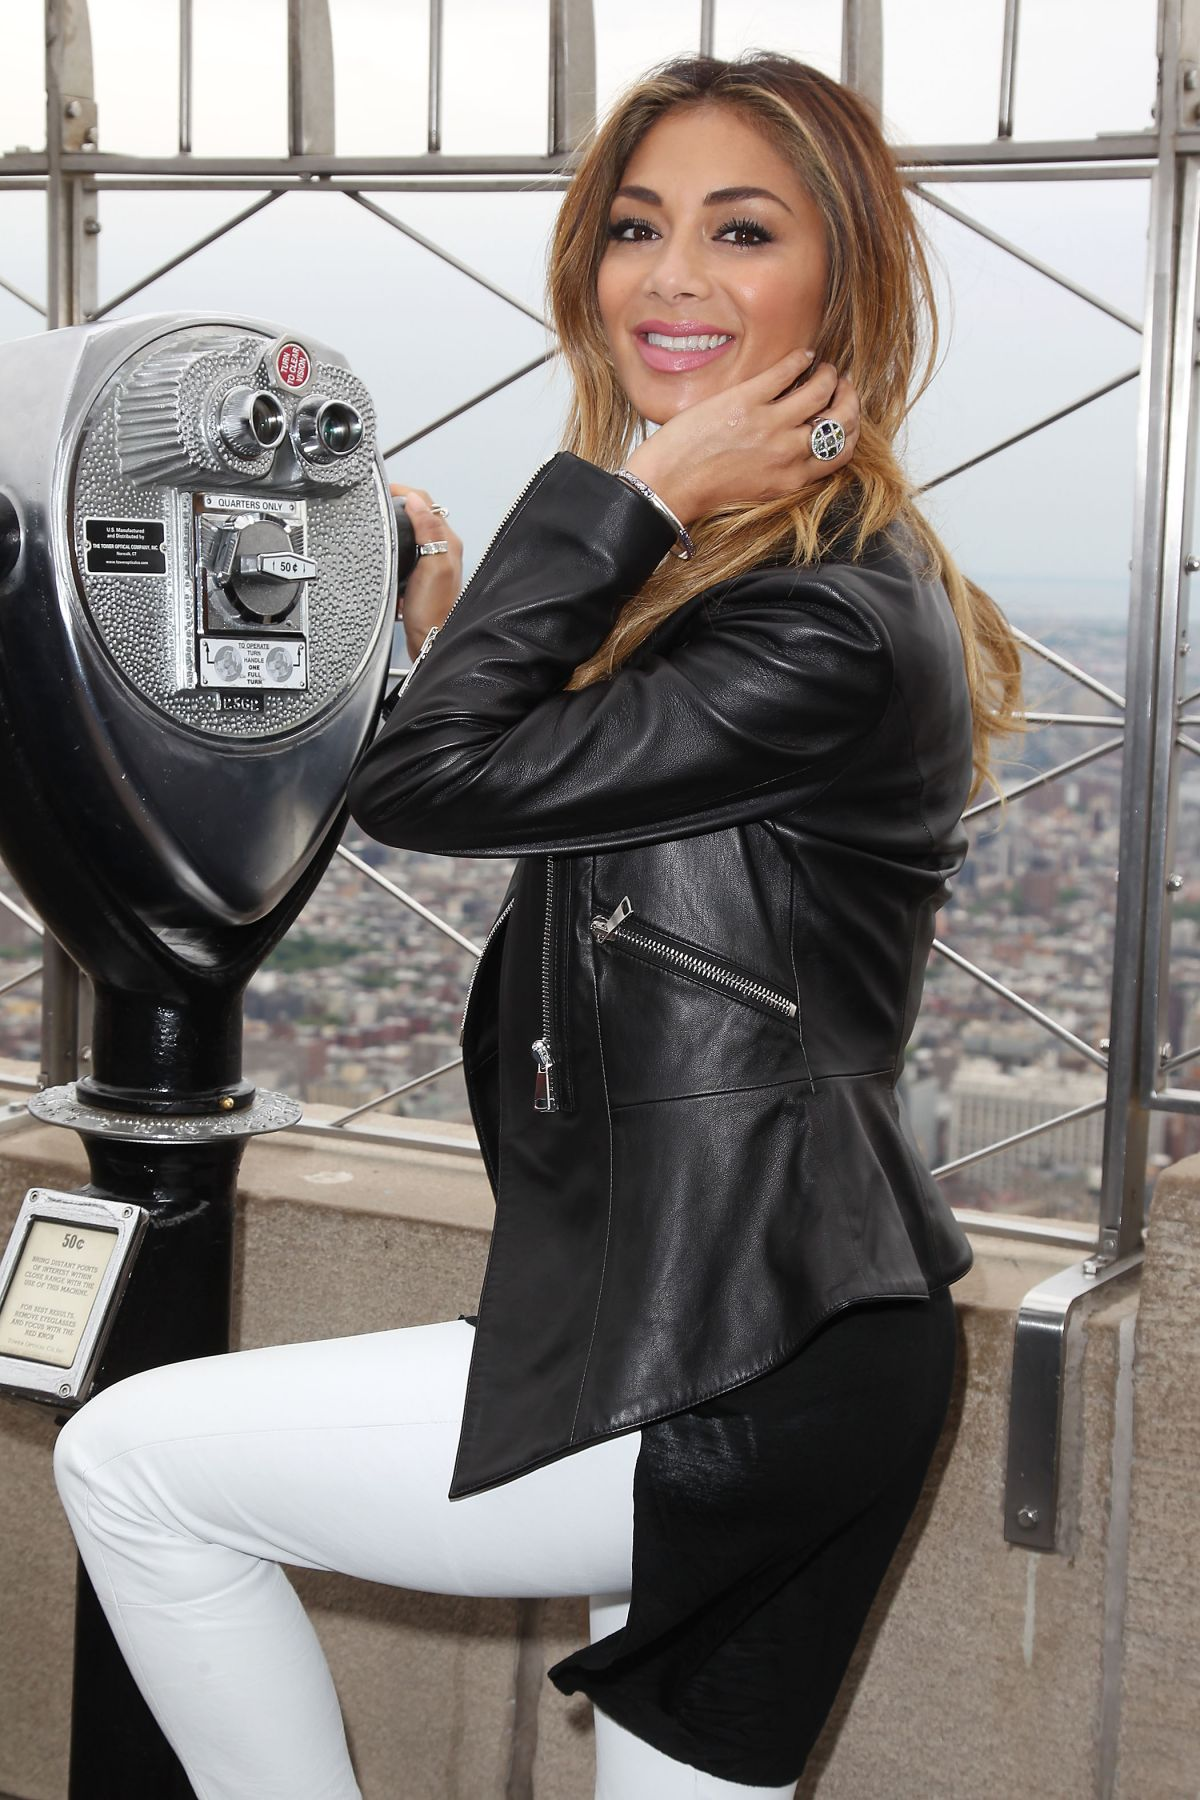 NICOLE SCHERZINGER at Empire State Building in New York 05/21/2015